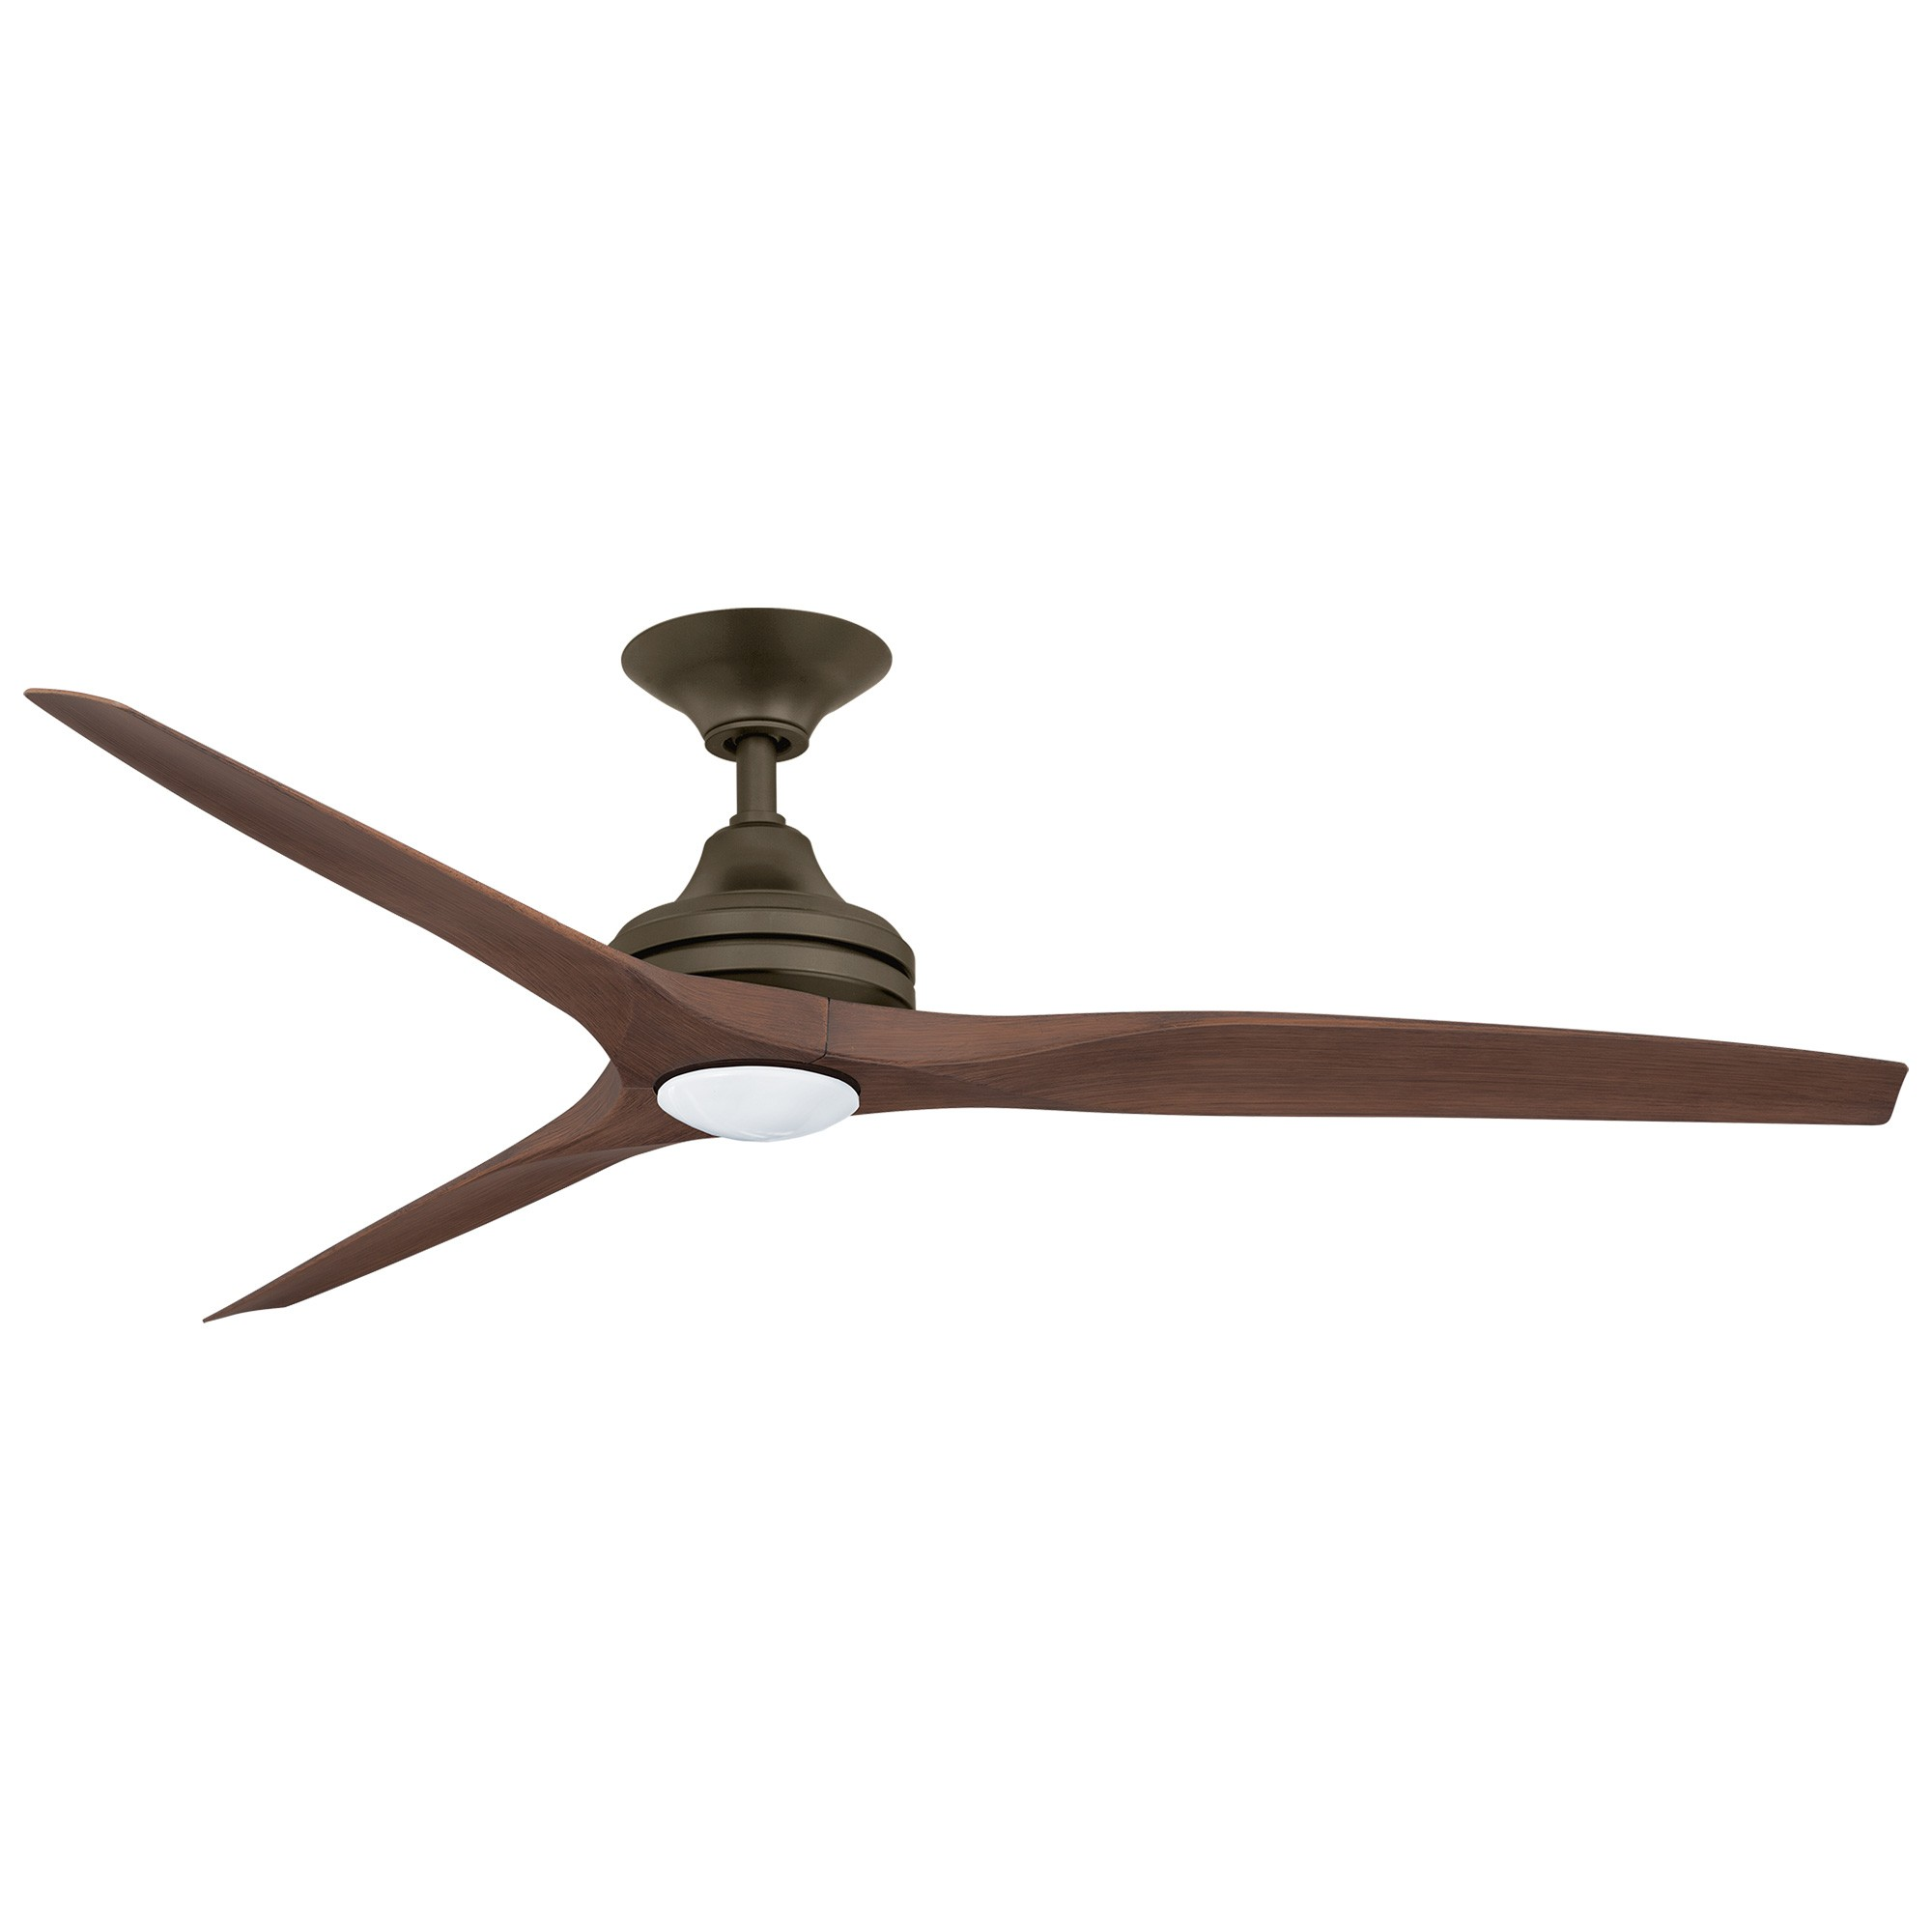 Threesixty Spitfire 2 Commercial Grade Ceiling Fan with LED Light, 152cm/60